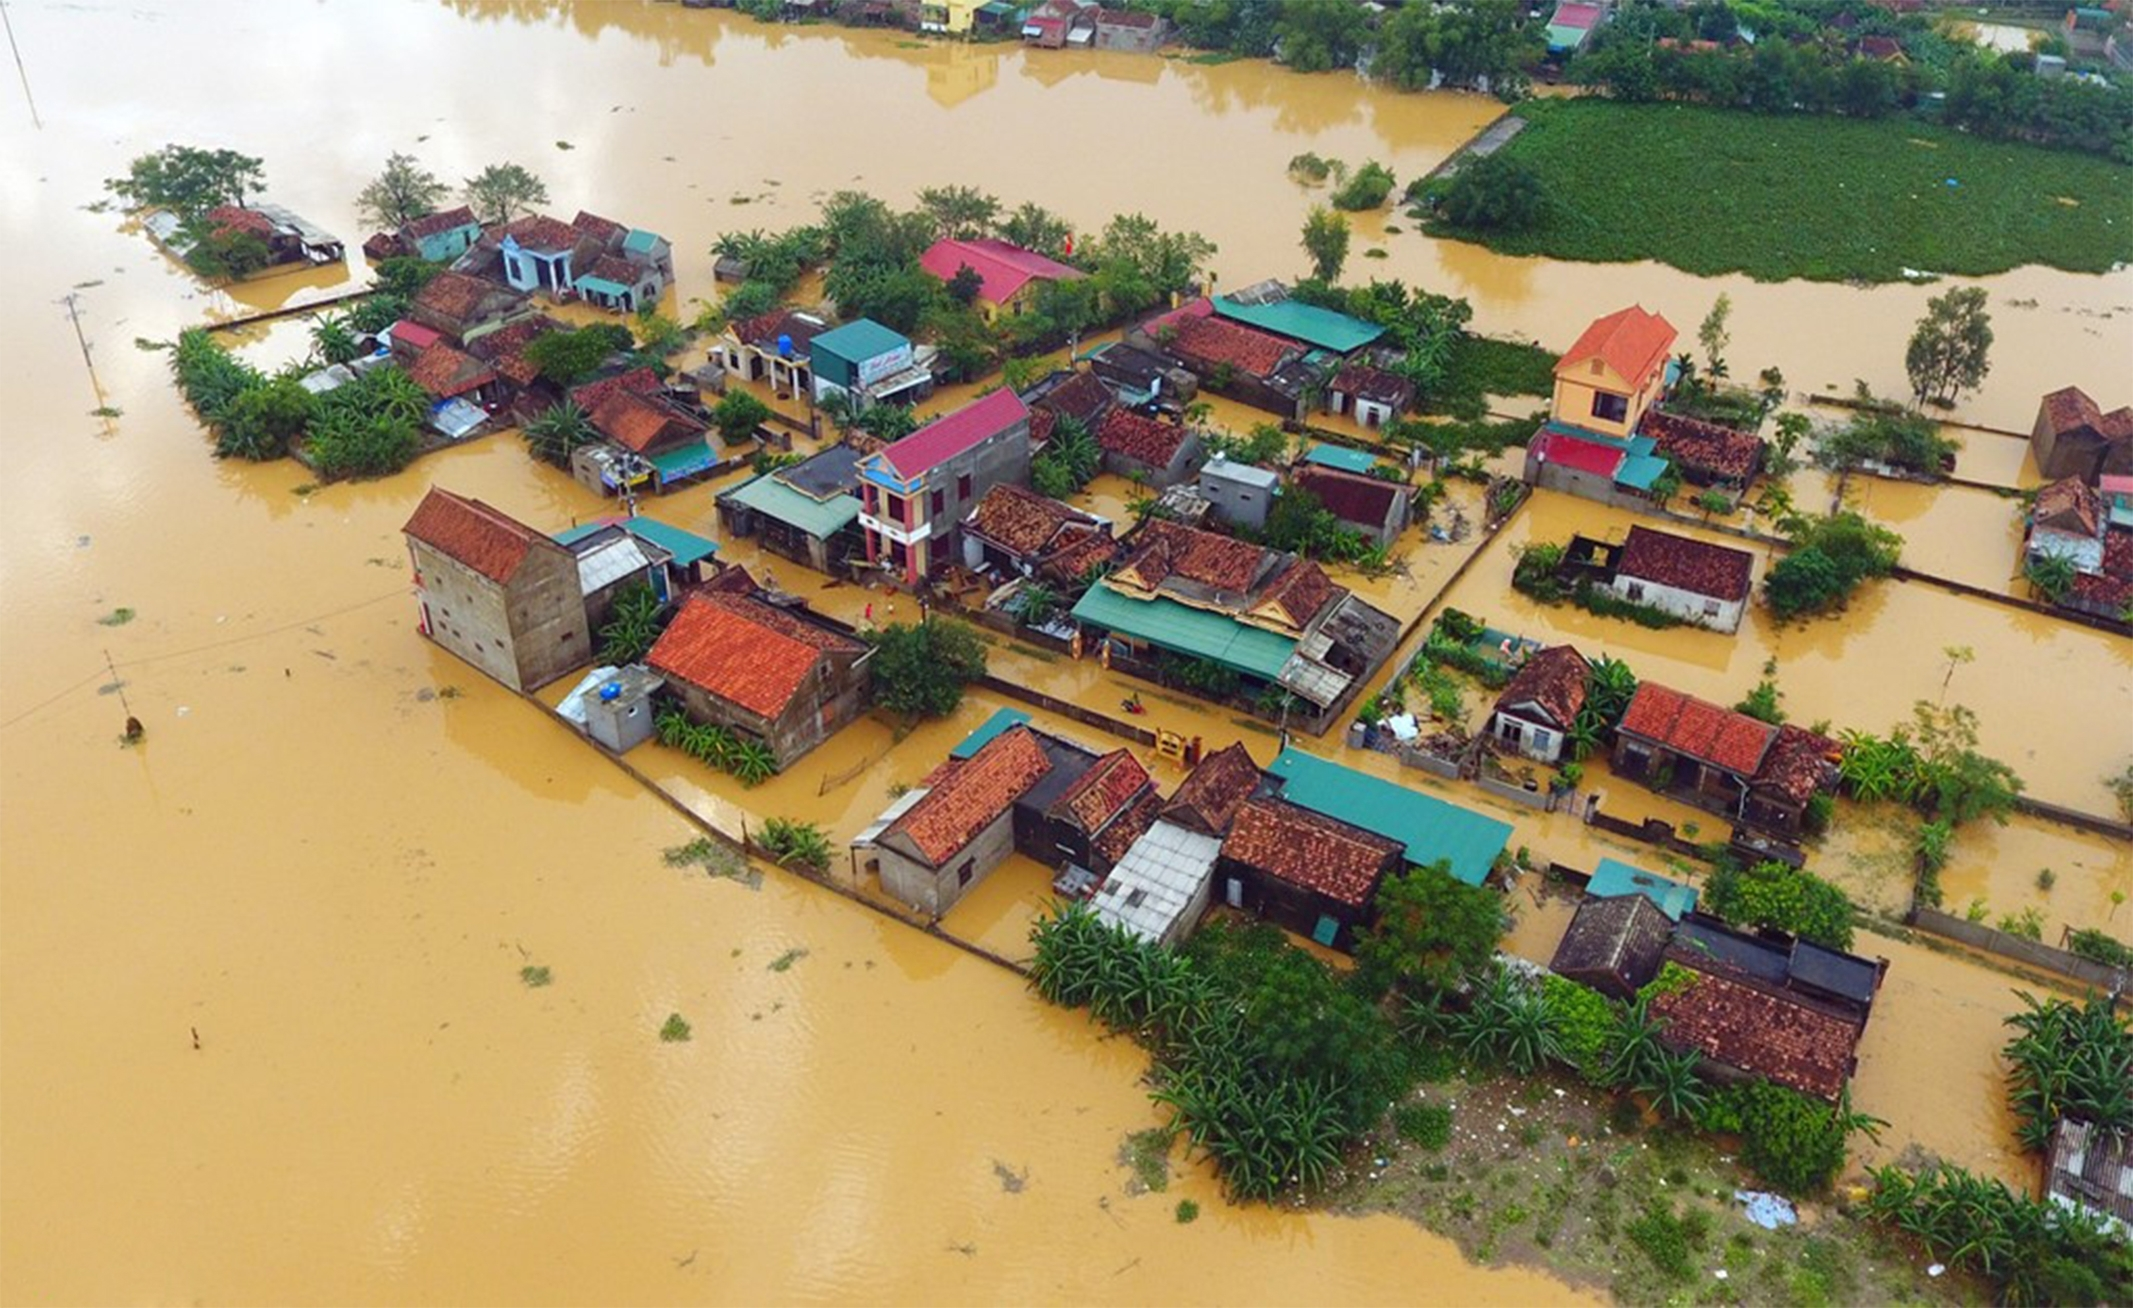 The United States Announces Assistance to Vietnam to Respond to Tropical Storm Linfa